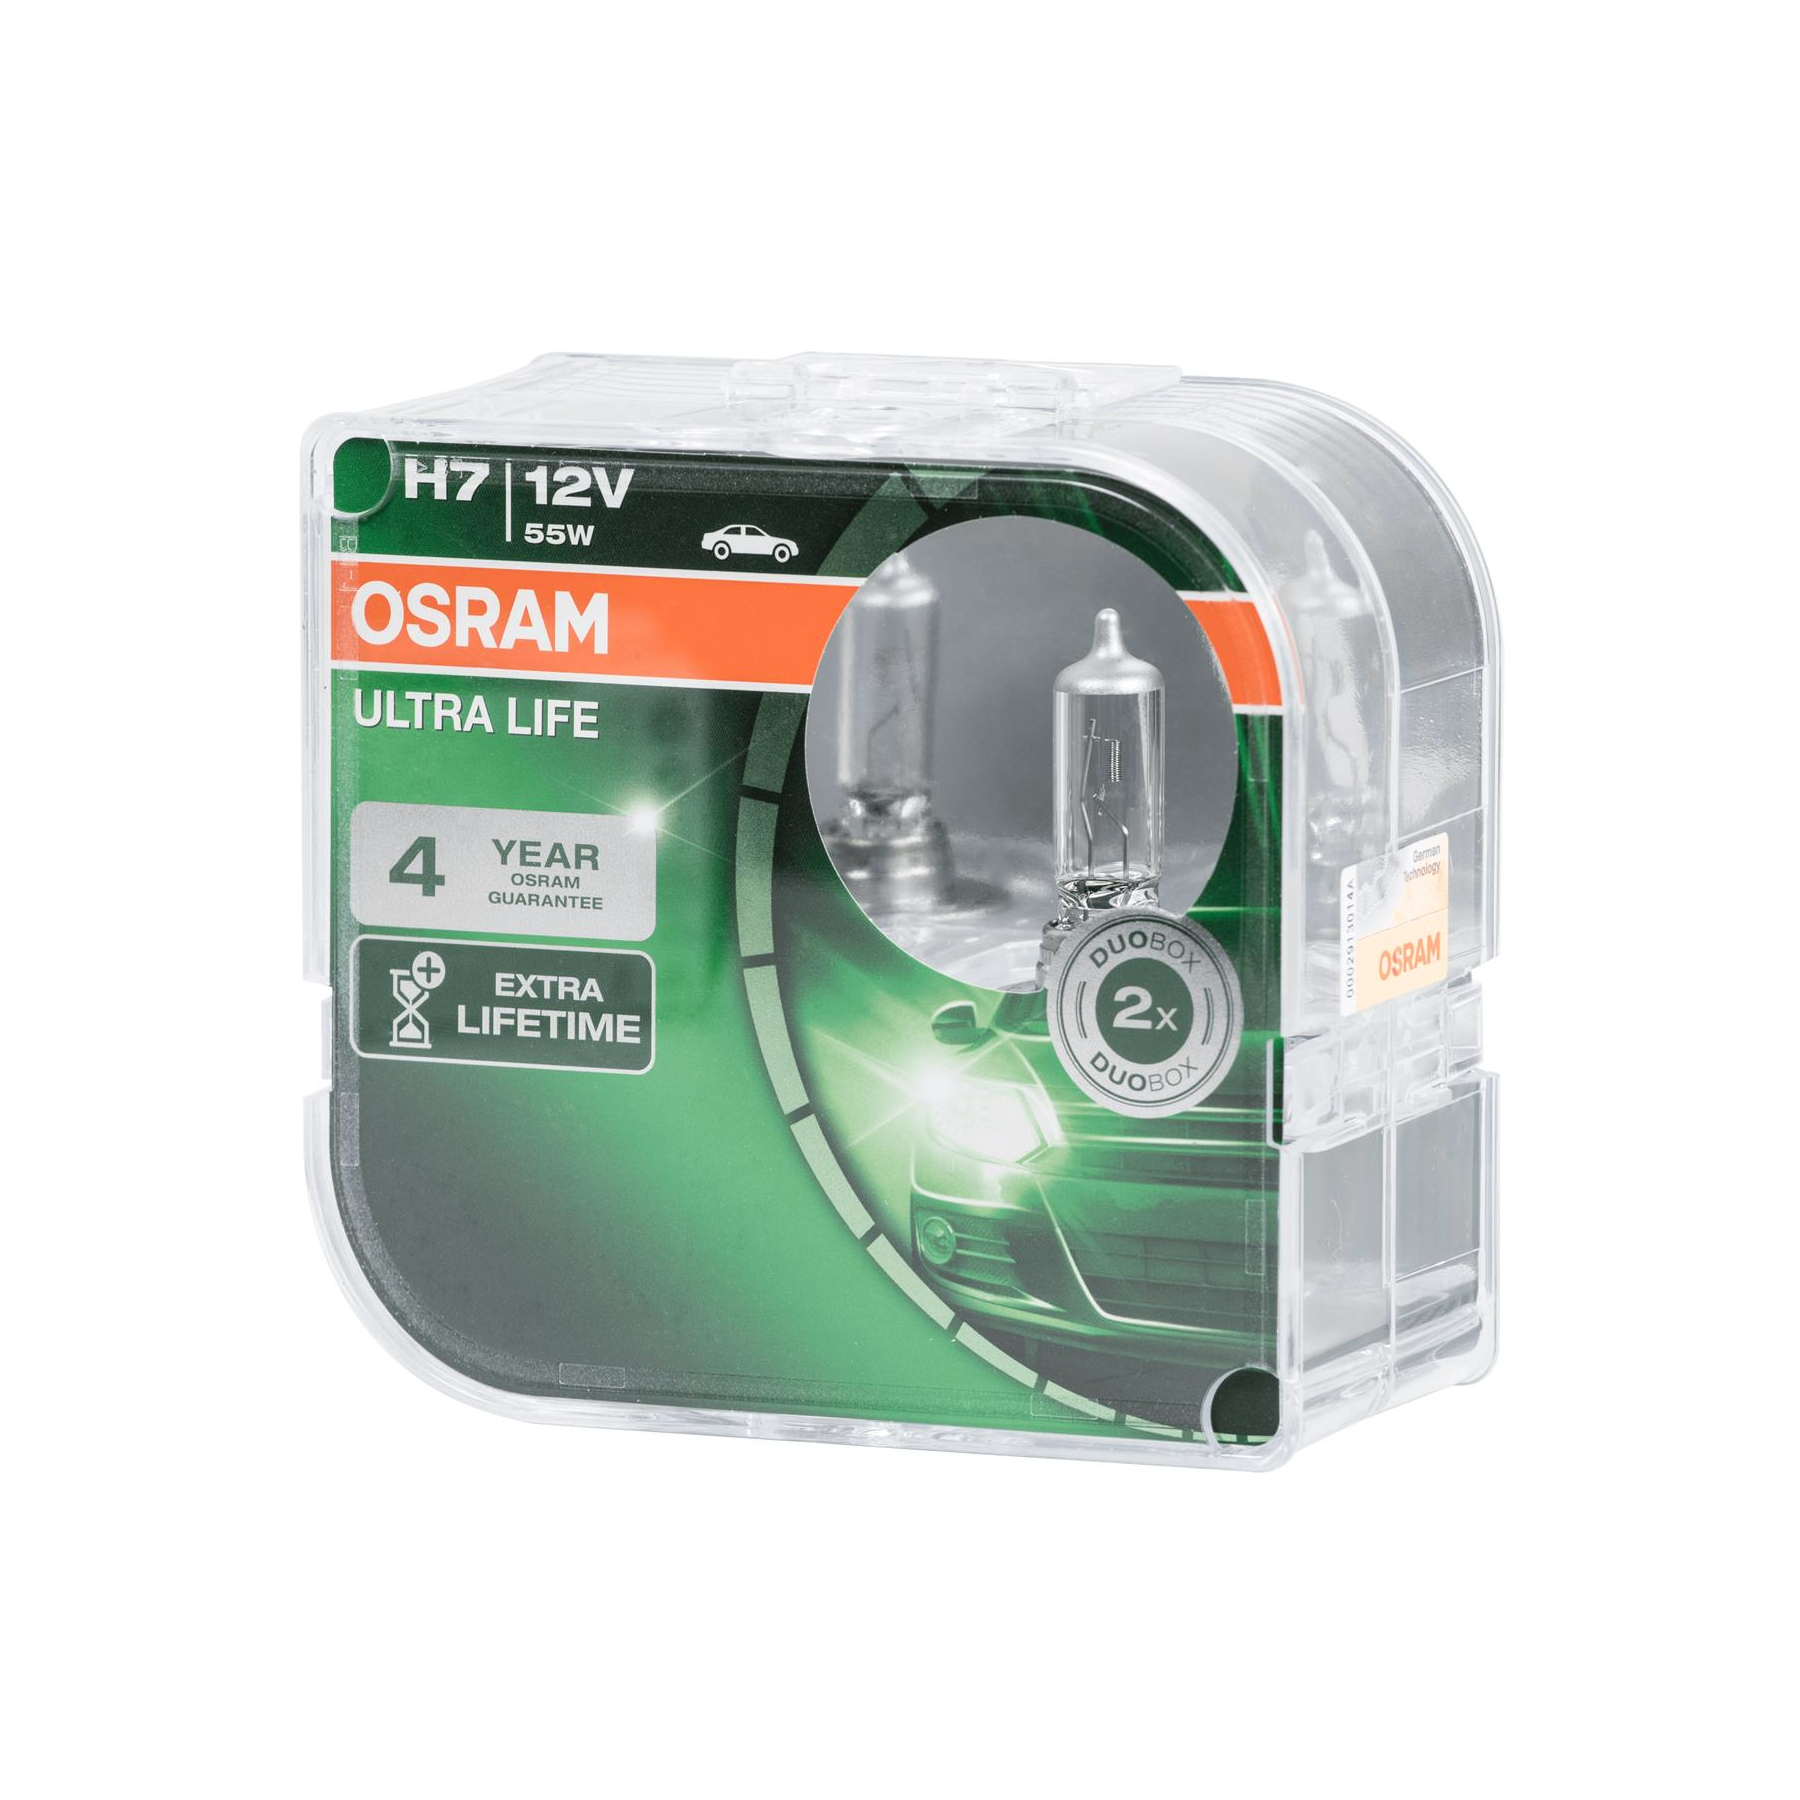 osram ultra life h7 64210ult hcb autolampen duo box 11 70. Black Bedroom Furniture Sets. Home Design Ideas